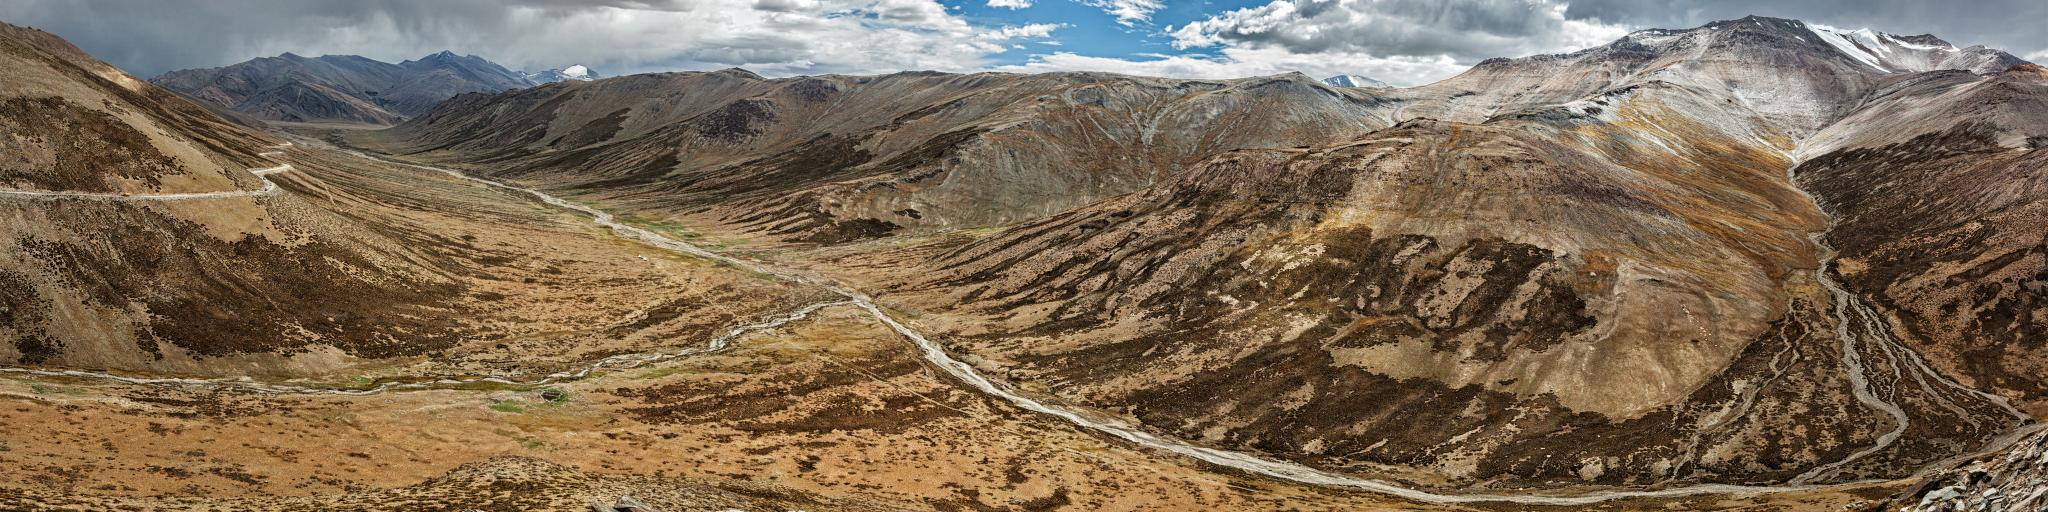 The dramatic landscape of one of the highest roads in the world - the Tangla La pass in the Ladakh region of Kashmir, India